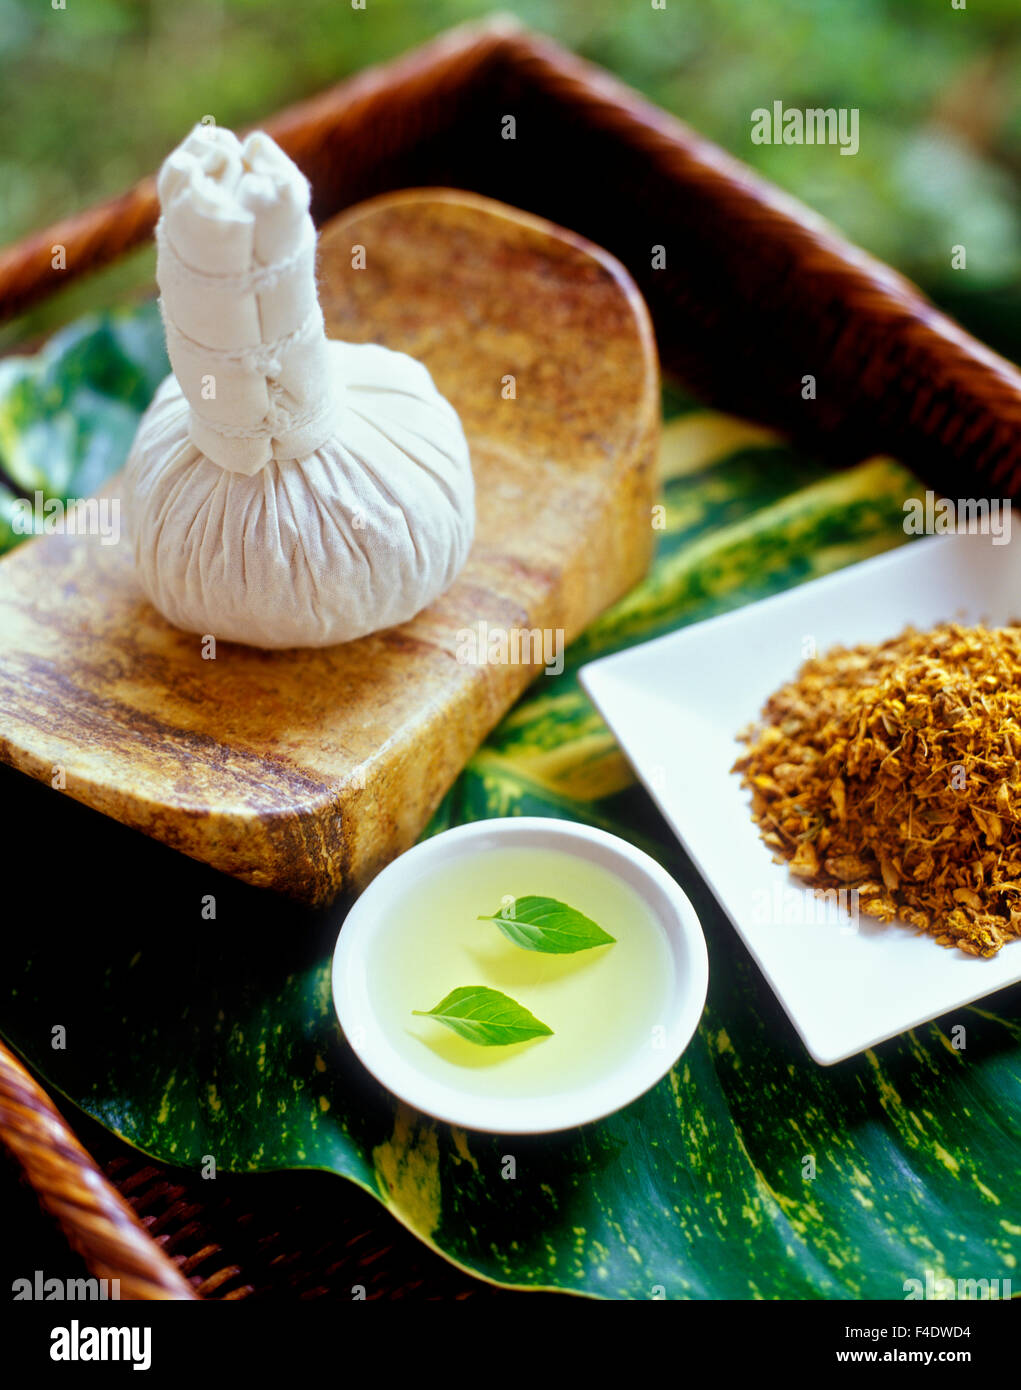 Ingredients for a hot poultice massage. Basil leaves in grape seed oil, and poultice.Riviera Maya,Yucatan,Mexico. - Stock Image